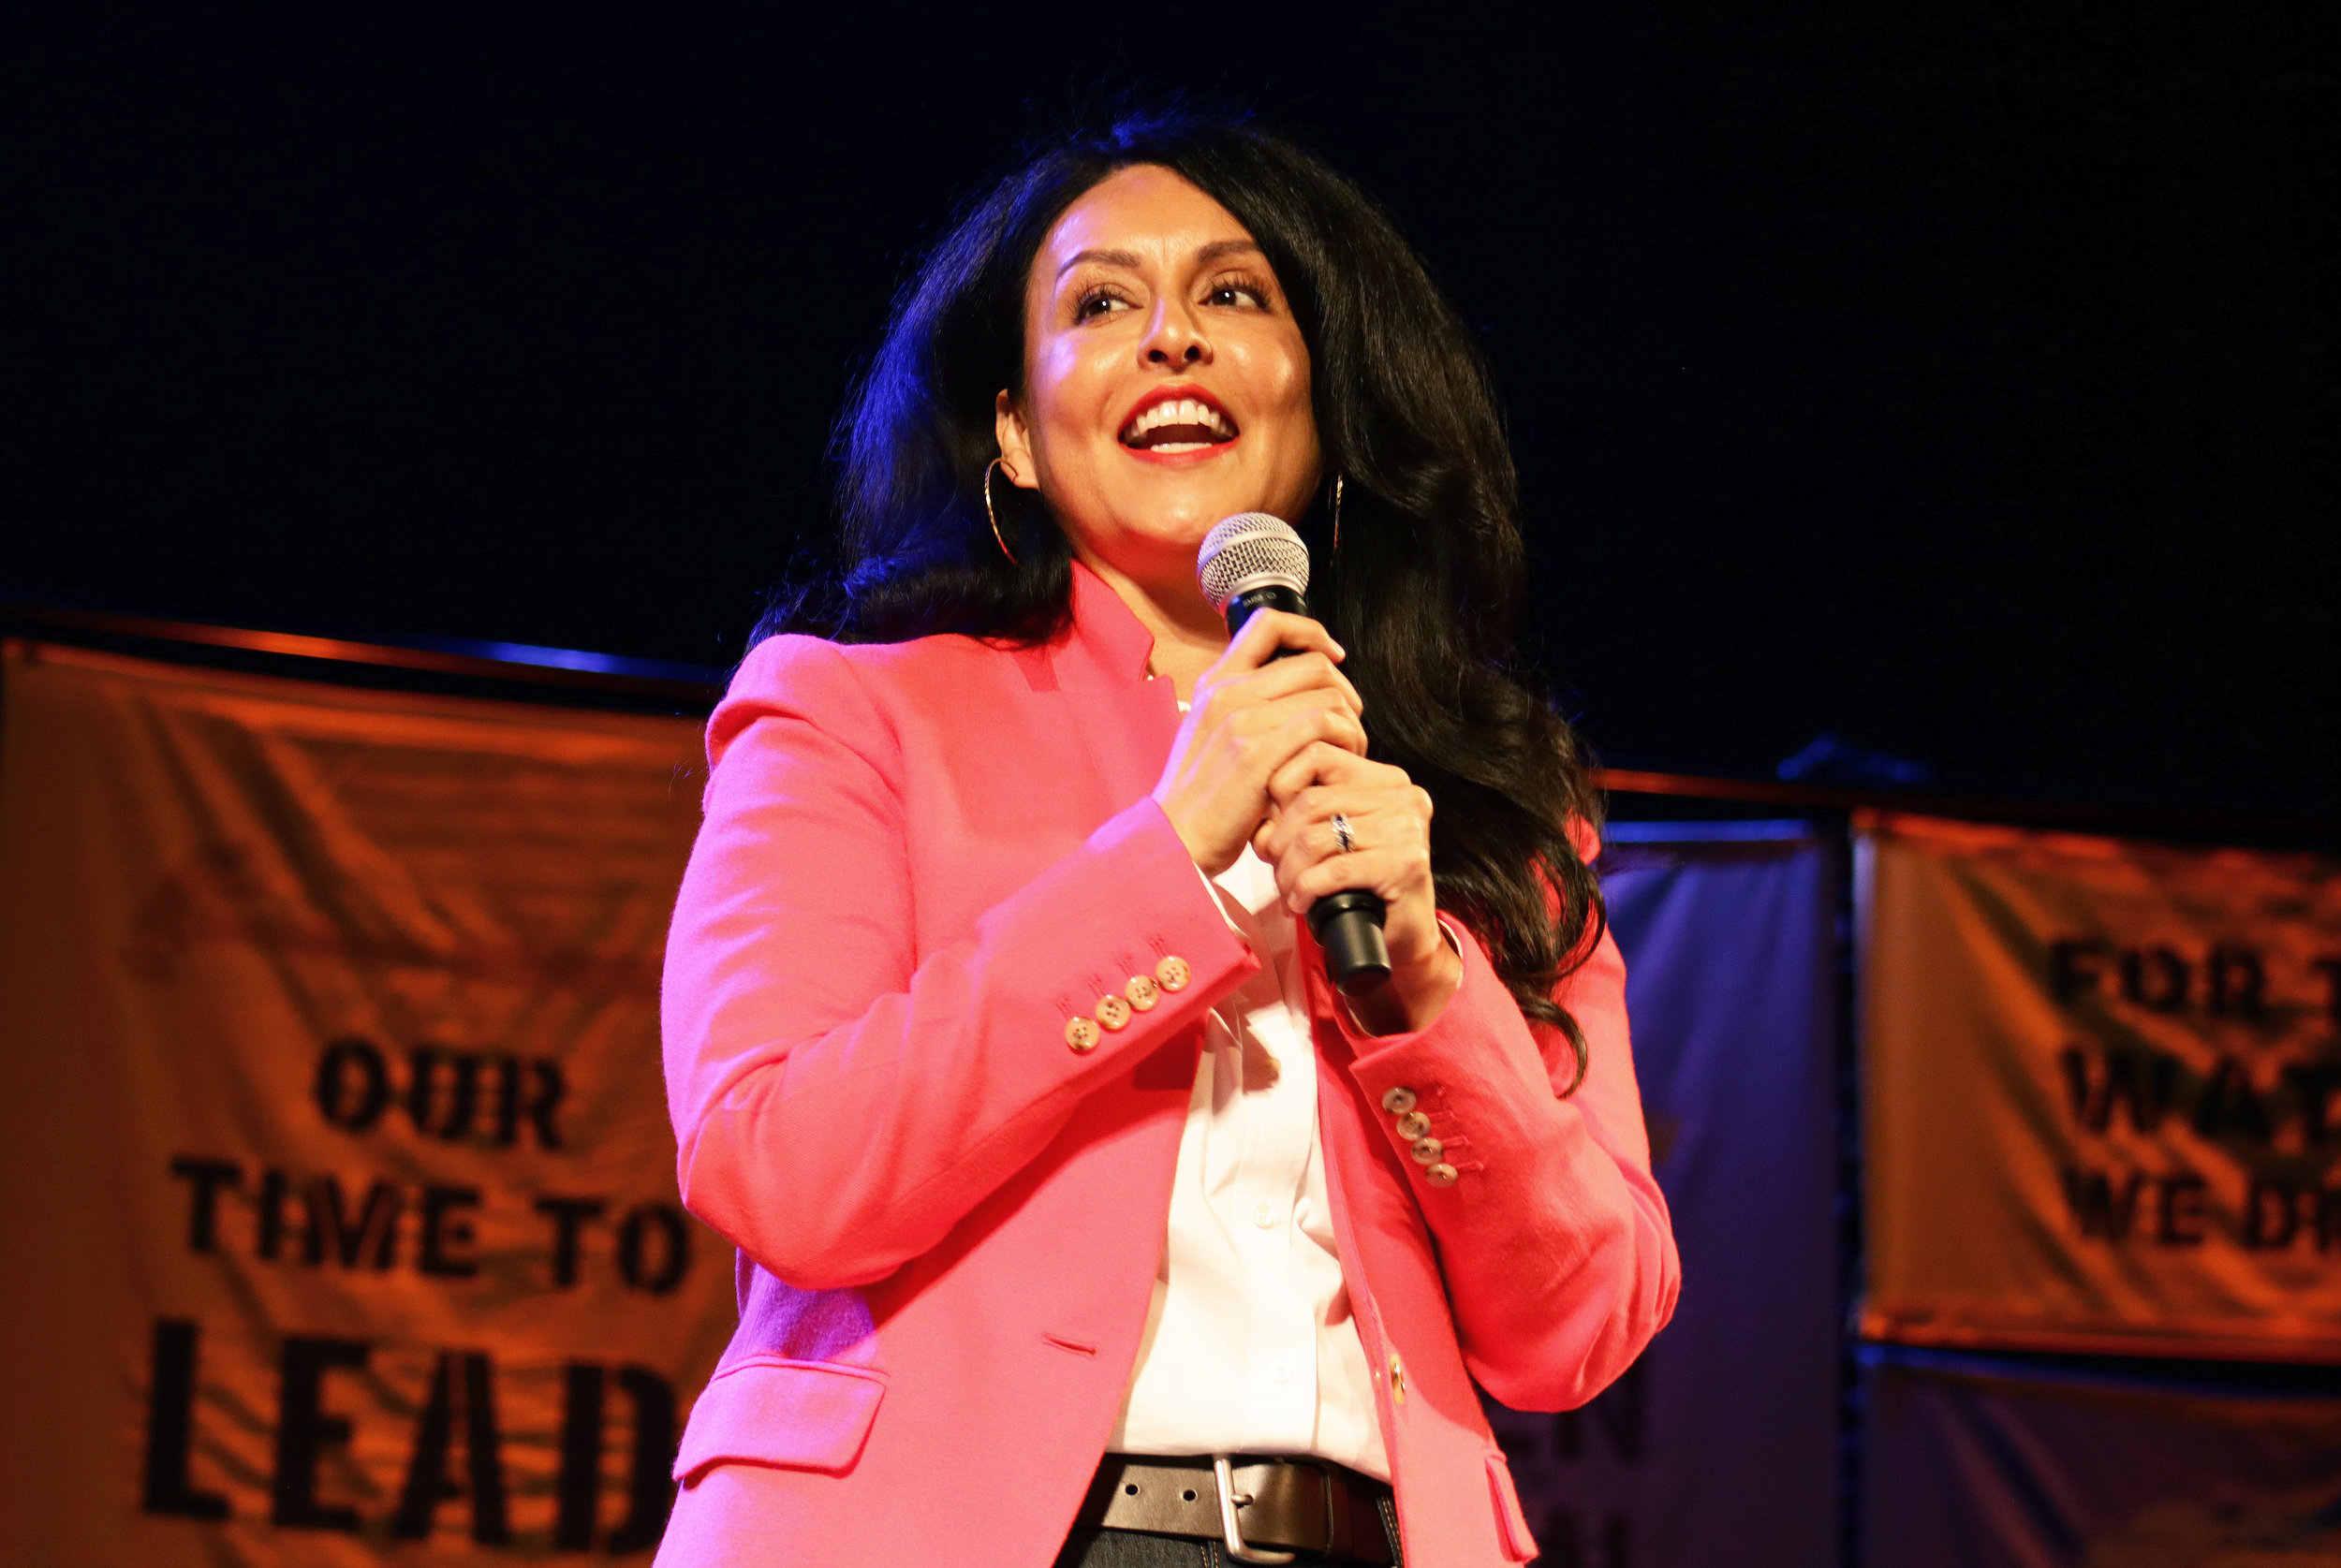 Los Angeles City Councilperson Nury Martinez